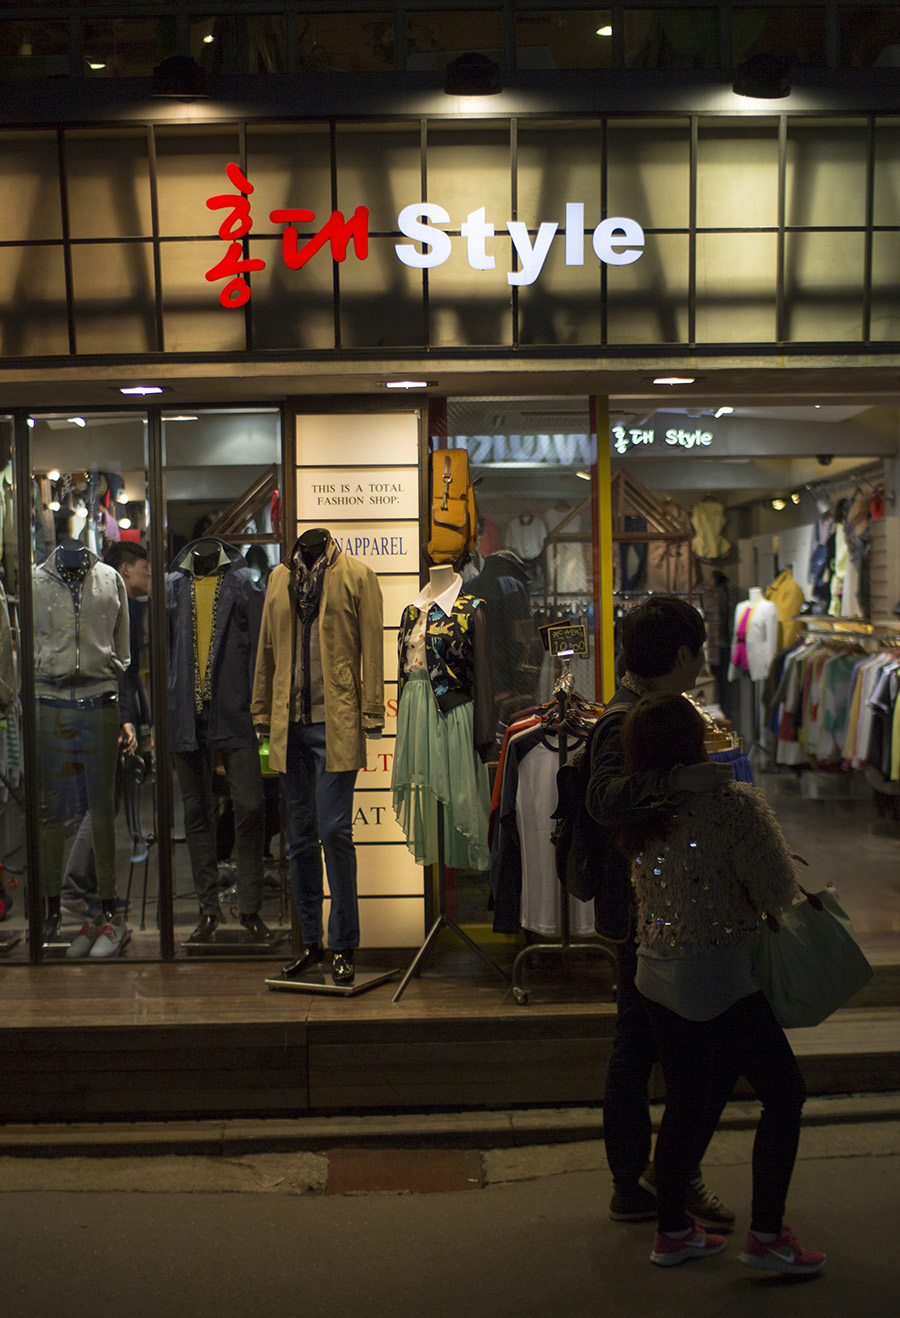 """This clothing store named """"Hongdae Style,"""" Hongdae is the neighborhood where this photo was taken, is a little late to cash in on the """"Gangnam Style craze."""""""